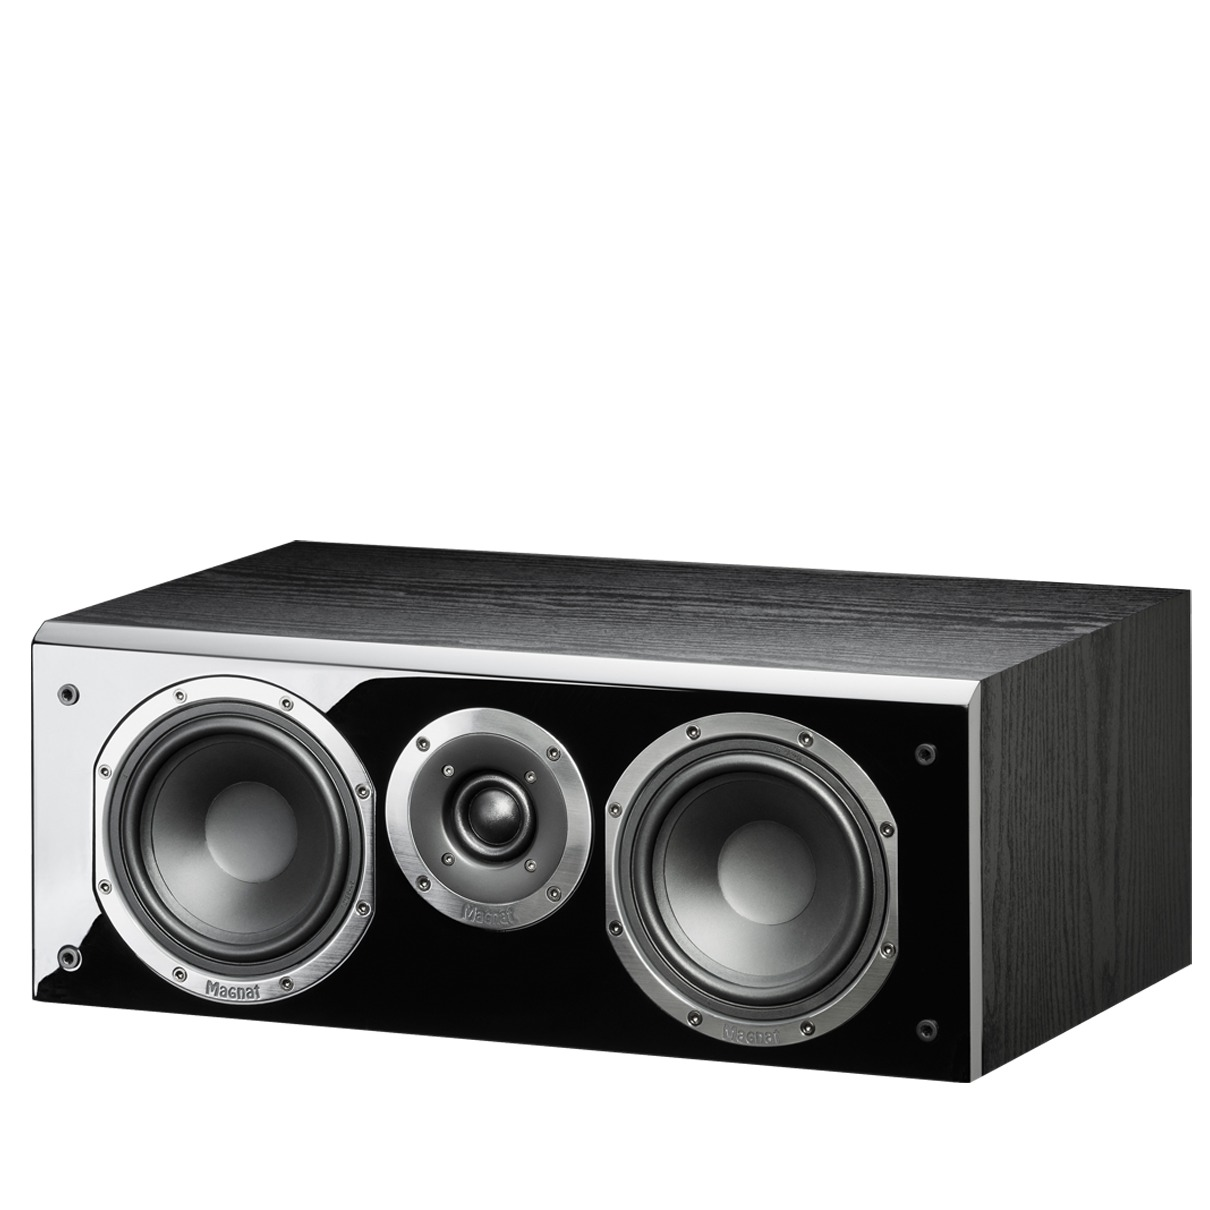 Magnat boekenplank speaker Shadow Center 213 zwart